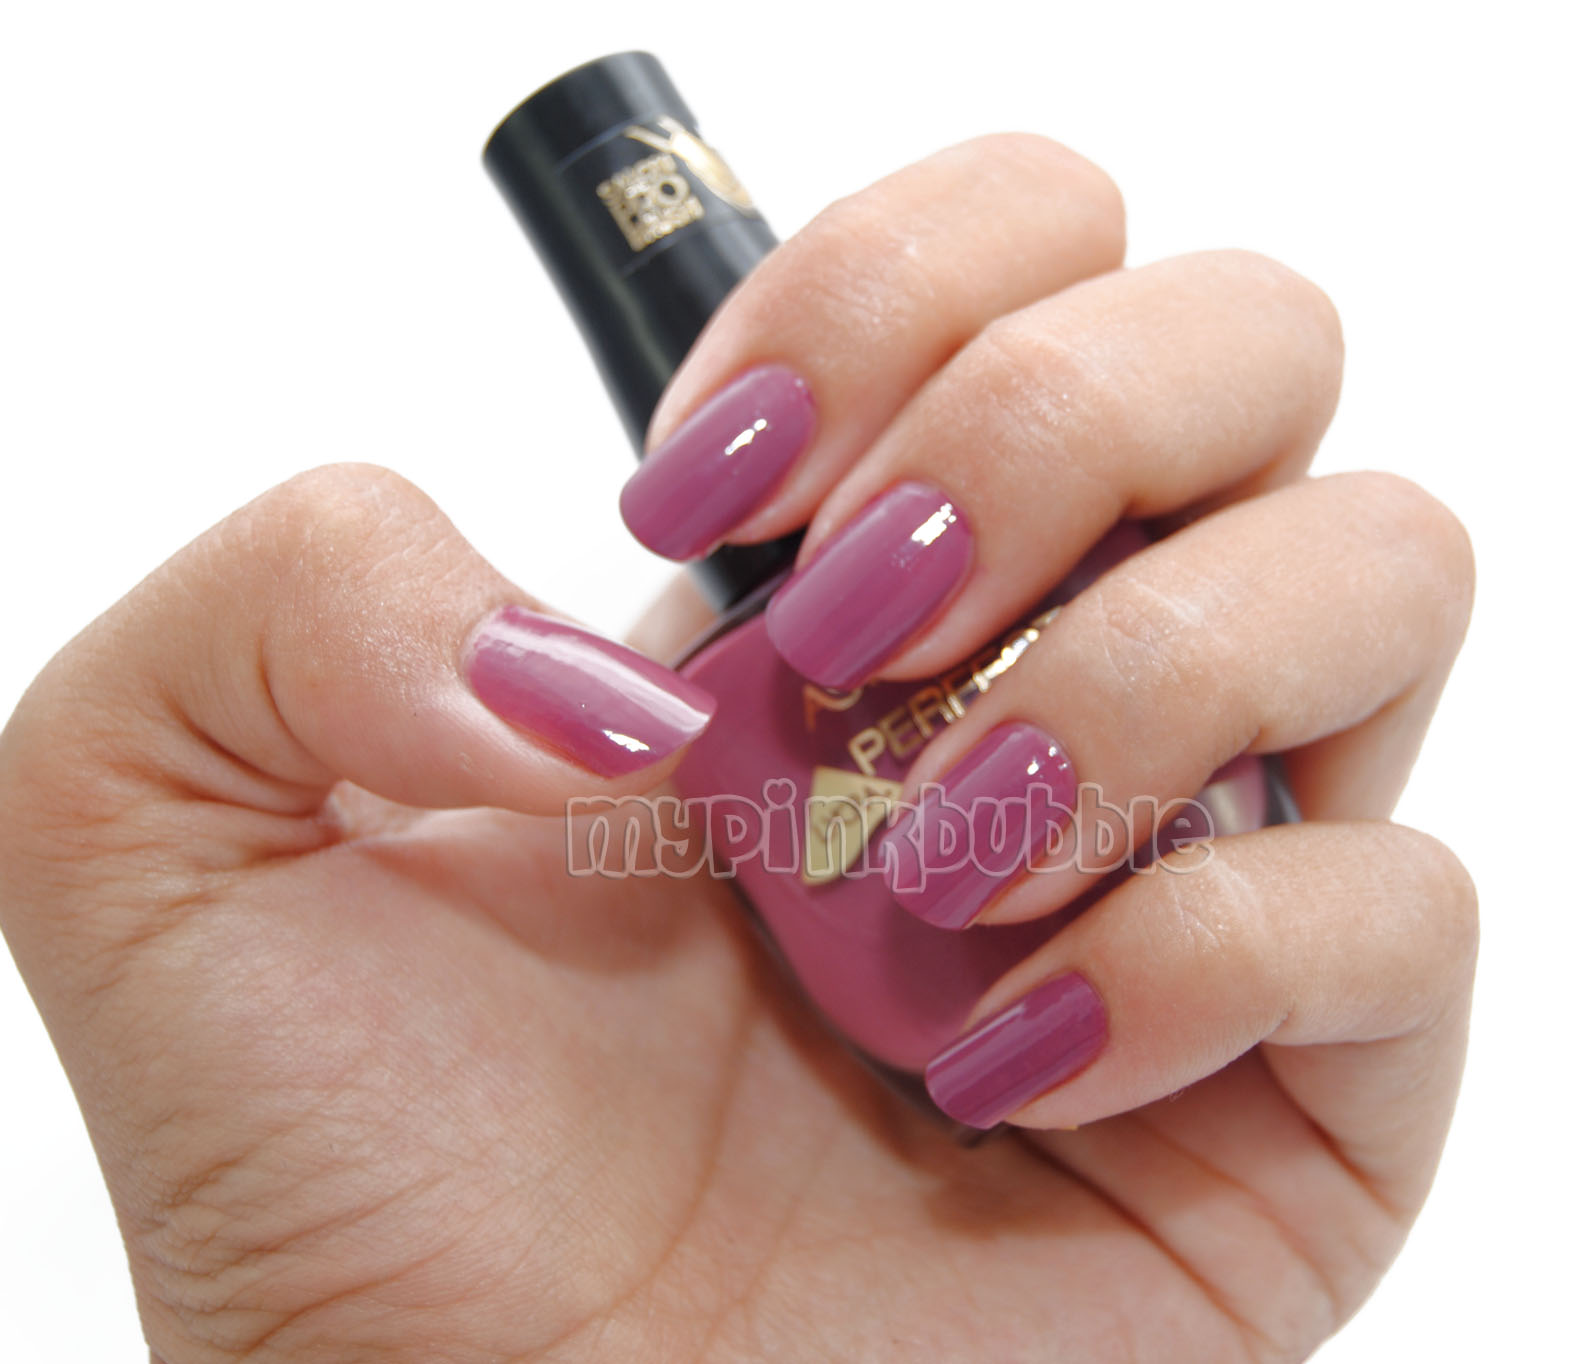 Esmalte Astor perfect stay 406 vintage rose swatch